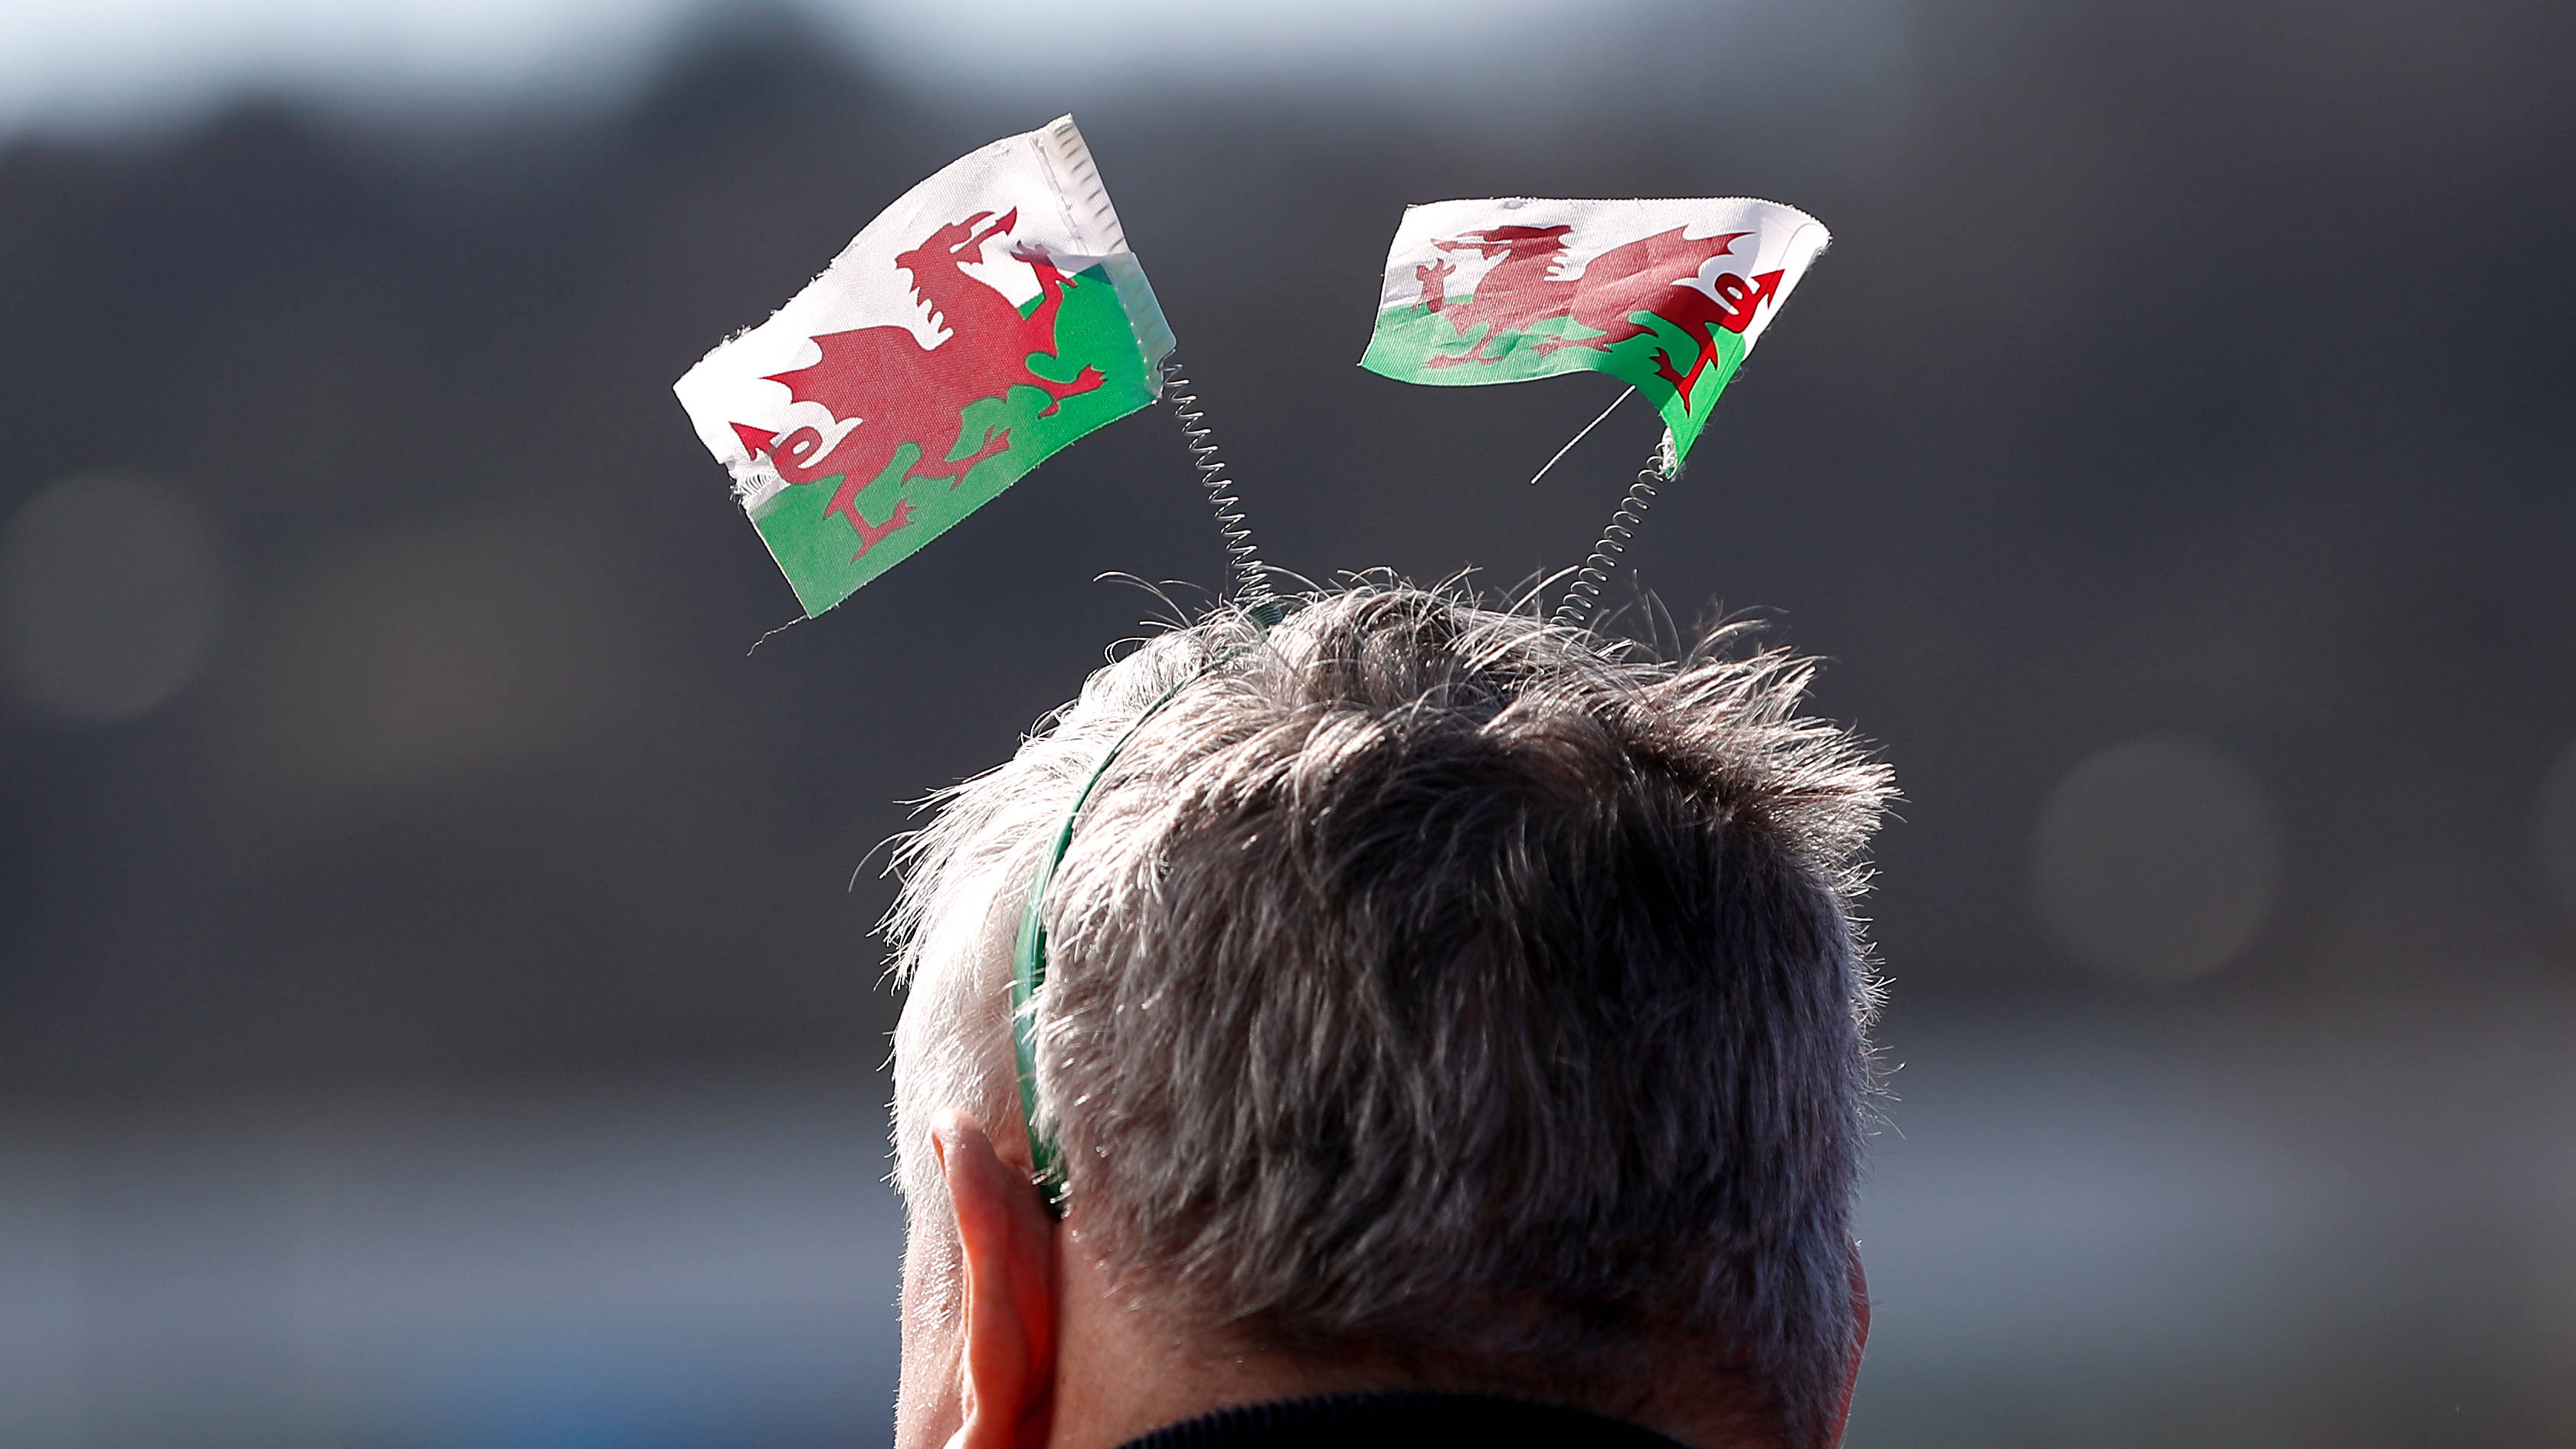 """Plaid Cymru Chief Whip: Brexit Has Led To A """"Huge"""" Surge In Support For Welsh Independence"""